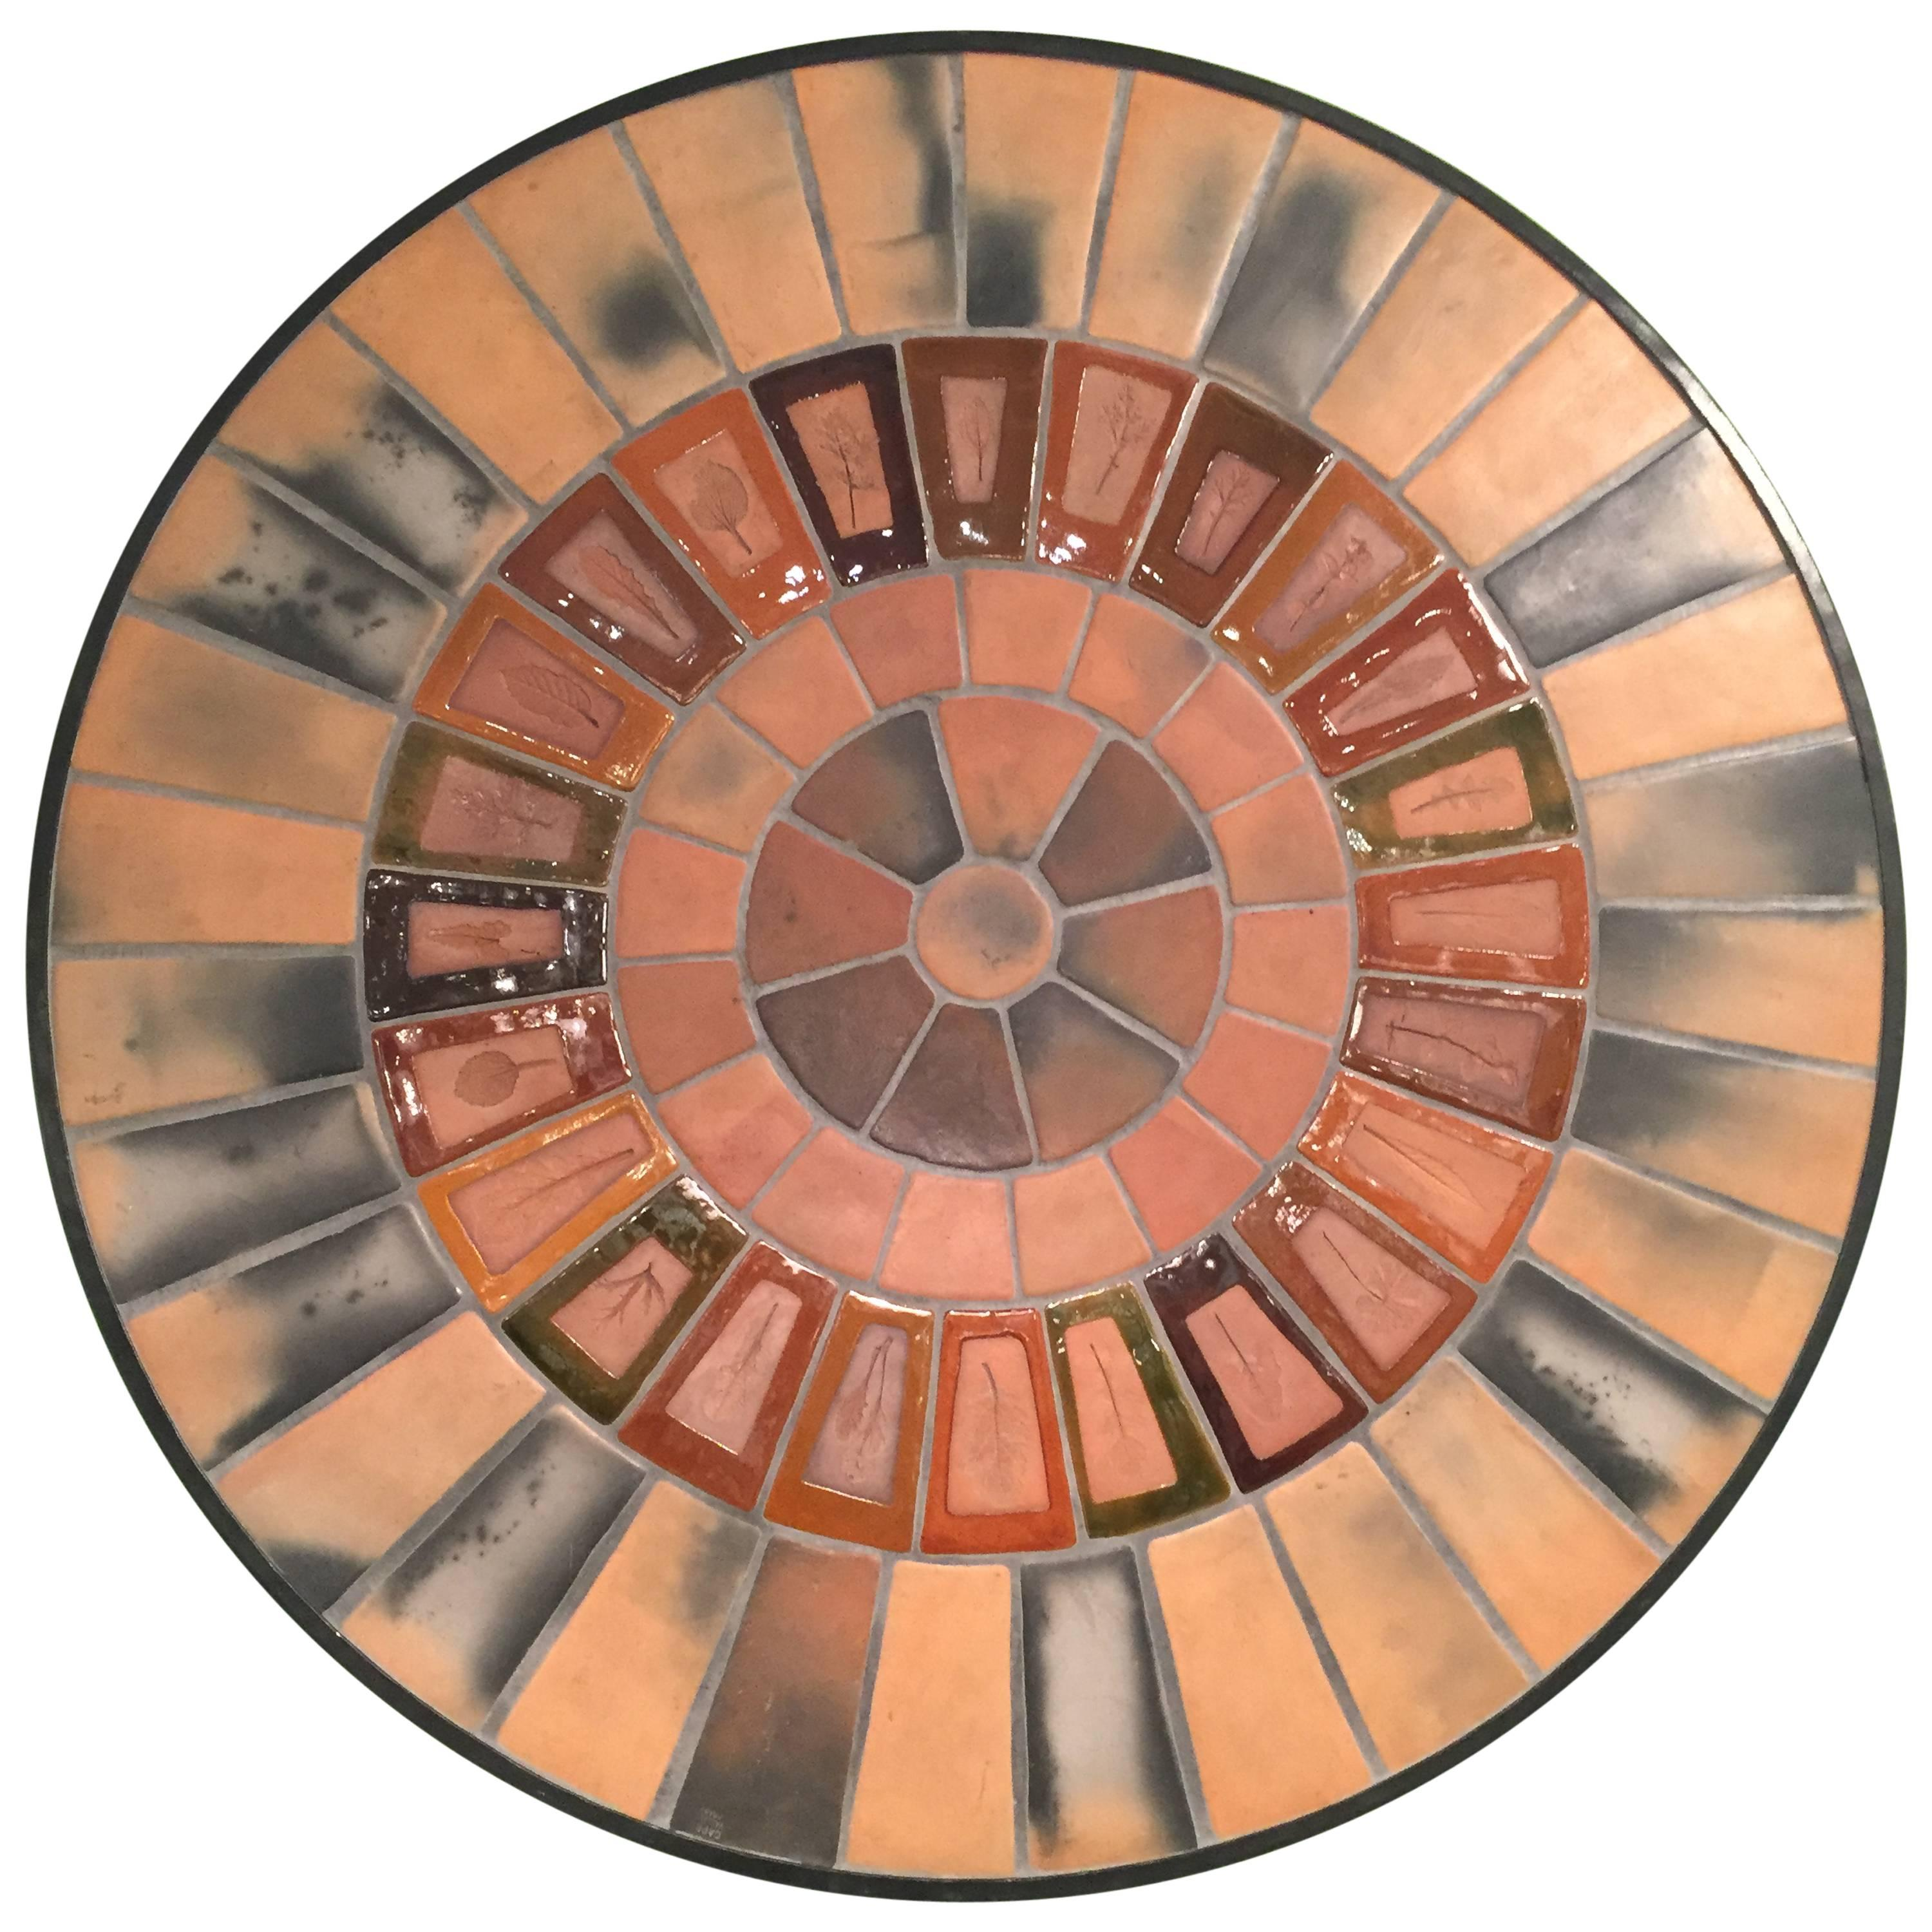 Vintage Ceramic Wall Panel, Table by Roger Capron